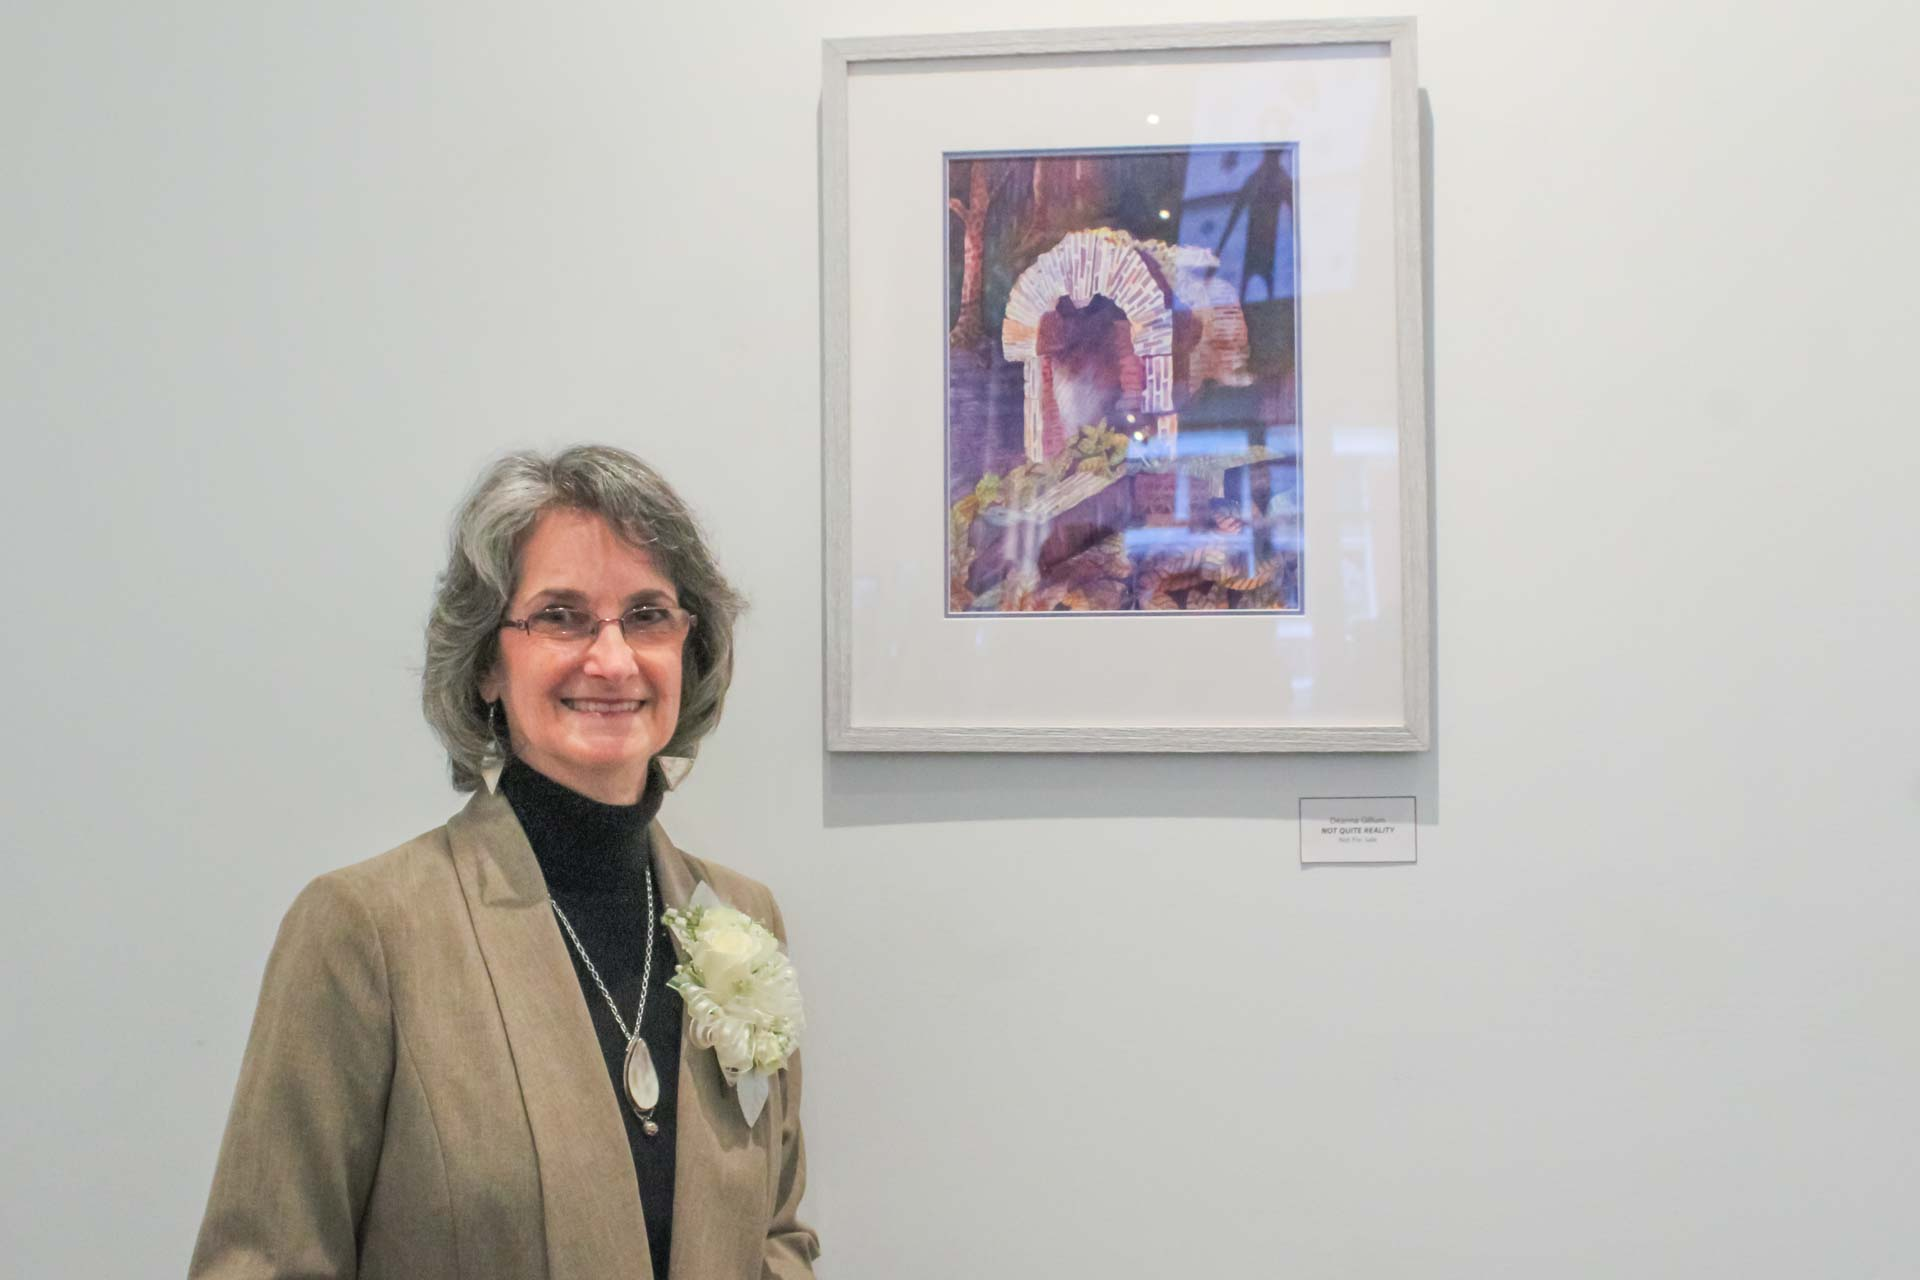 Local artist featured in solo watercolor exhibit at Colonial Theater Gallery in Buckhannon